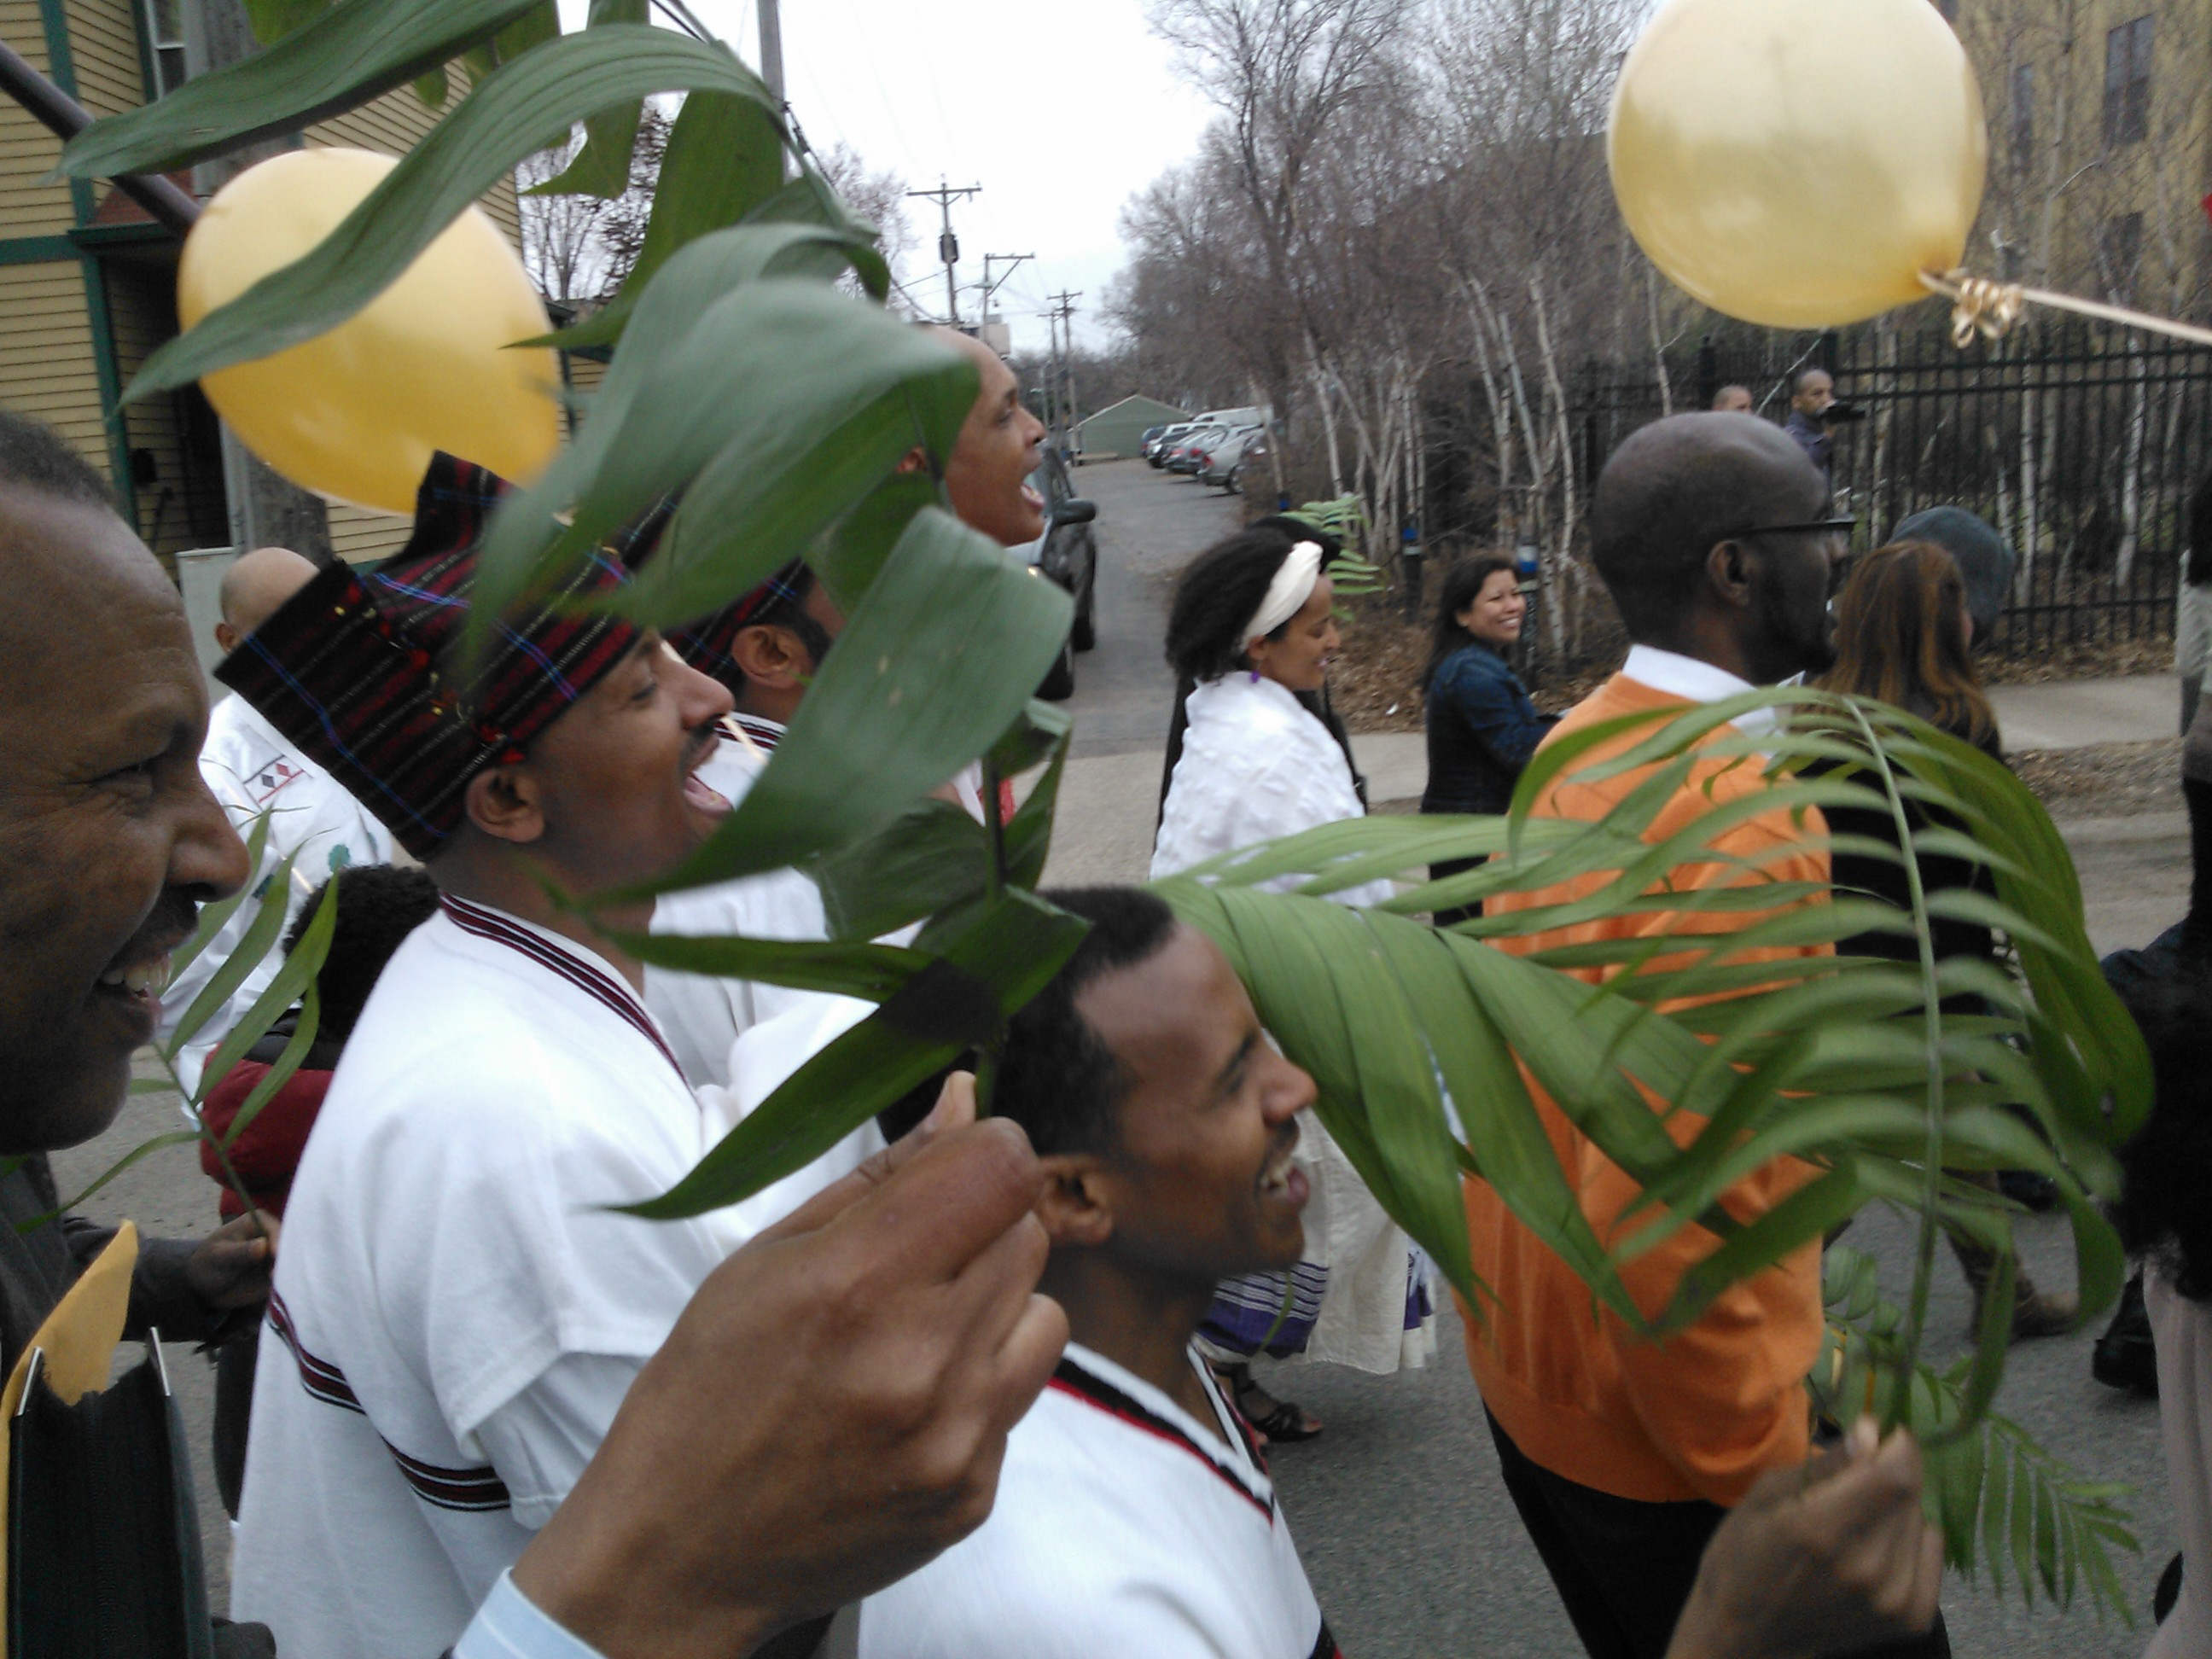 Ebenezer Oromo Church Members Sing Palm Sunday March St Paul's Lutheran Church in Minneapolis